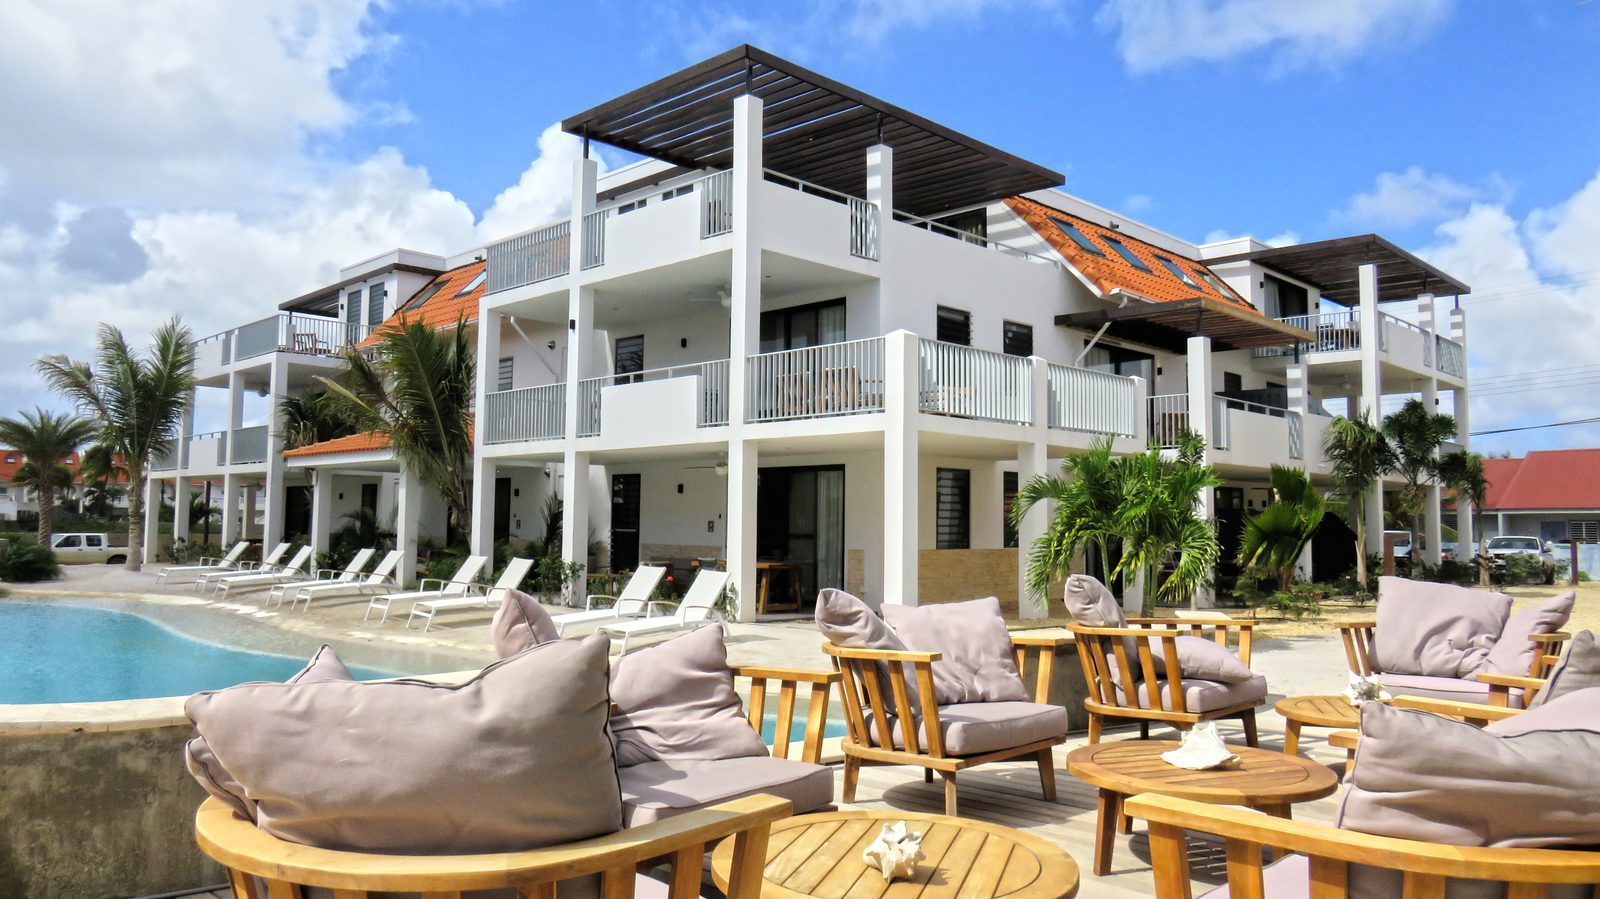 Luxusapartments auf Bonaire